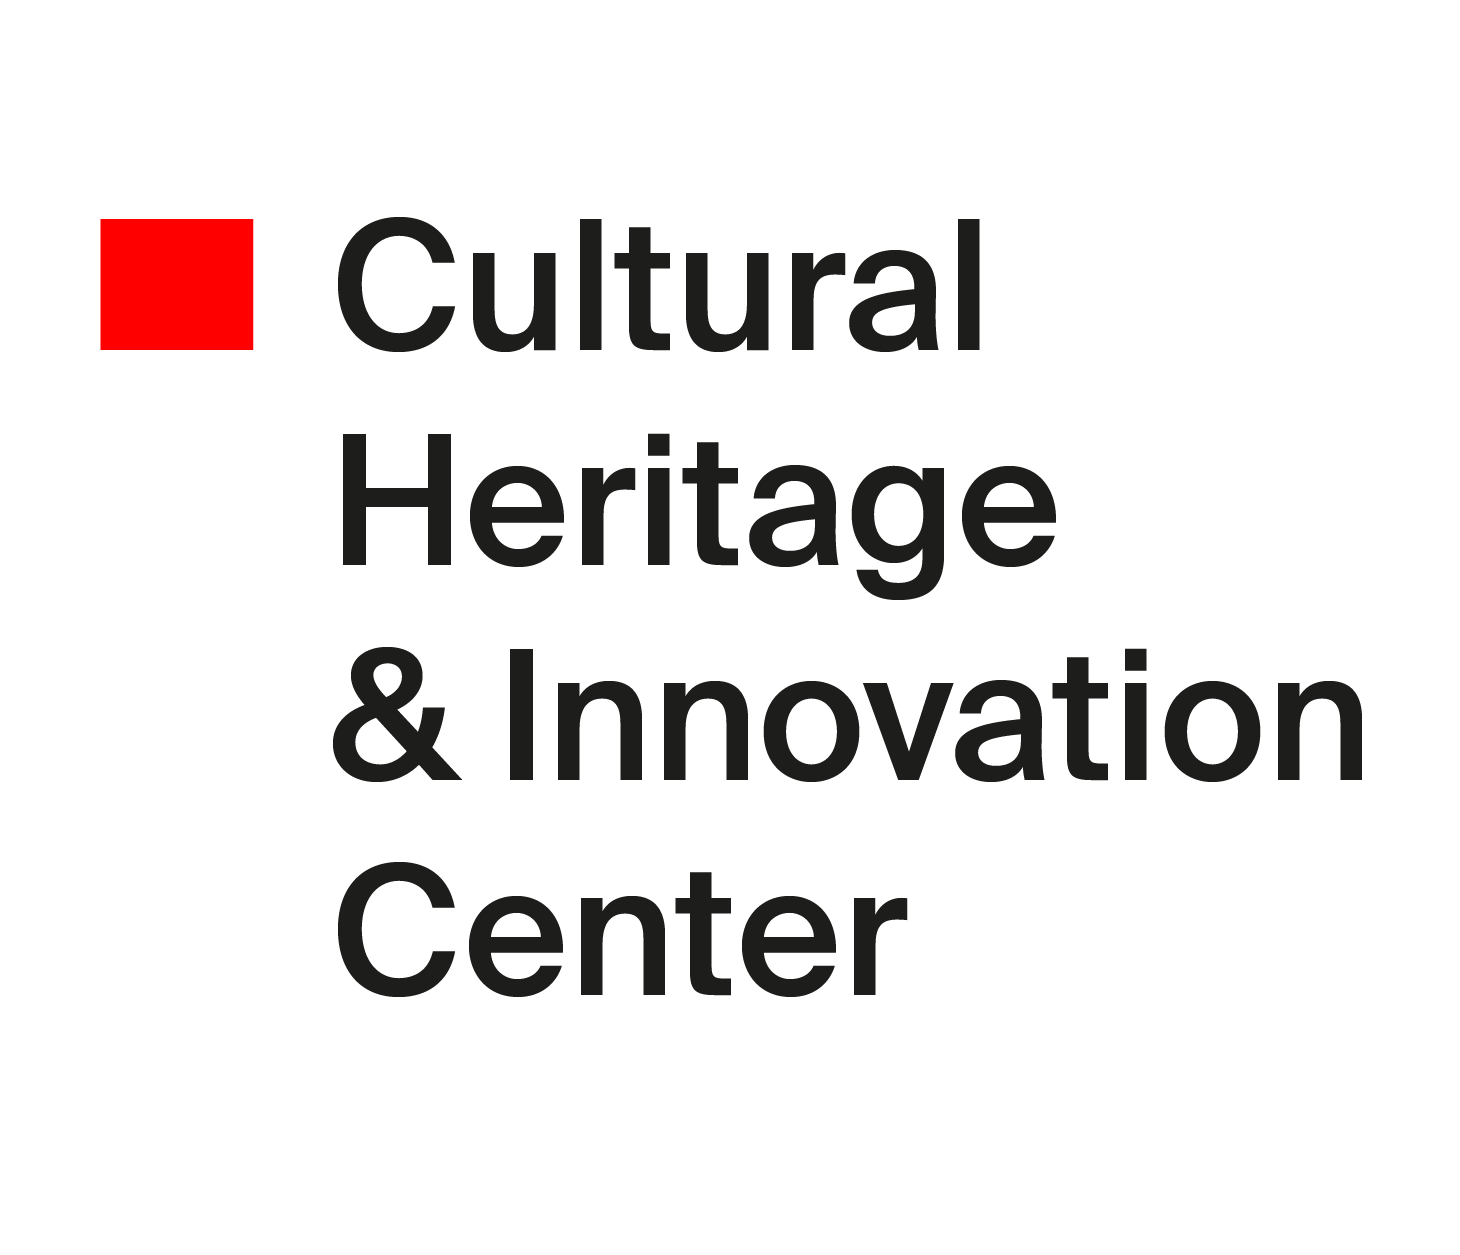 Logo Cultural-Heritage-&-Innovation-Center-RVB-grd.png